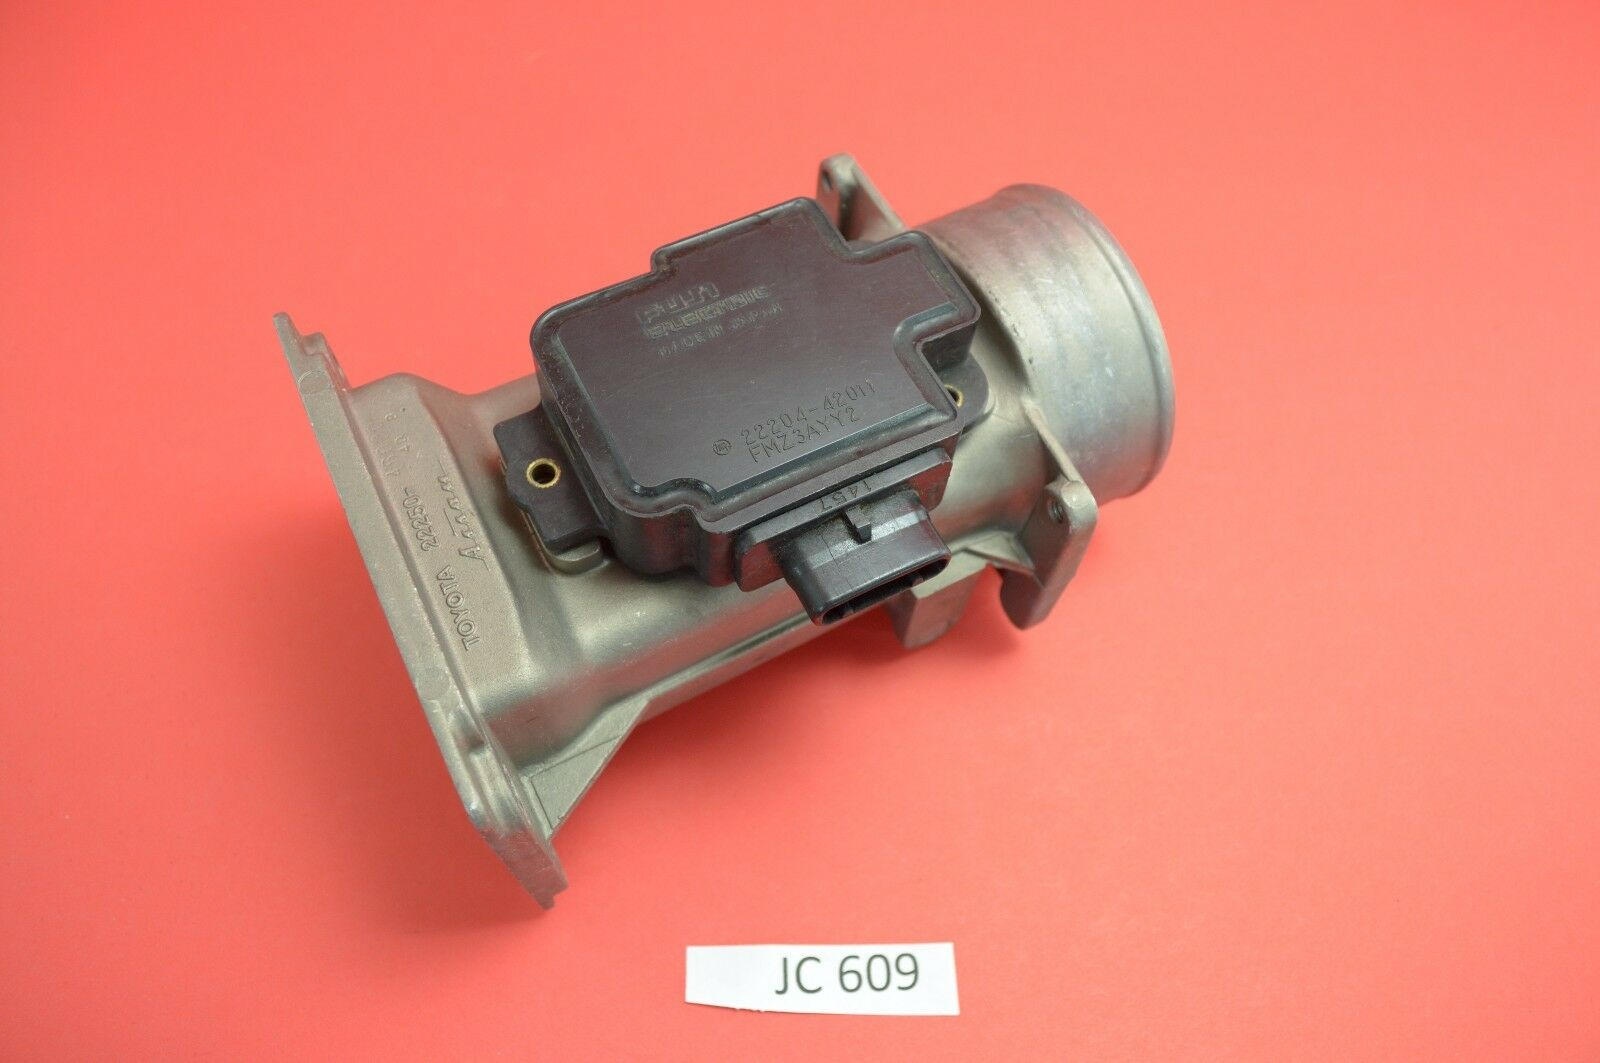 D6 91 95 Lexus Ls400 Toyota Supra Mass Air Flow Sensor 22204 42011 1997 Nissan Pick Up M 1 Of 7only Available See More